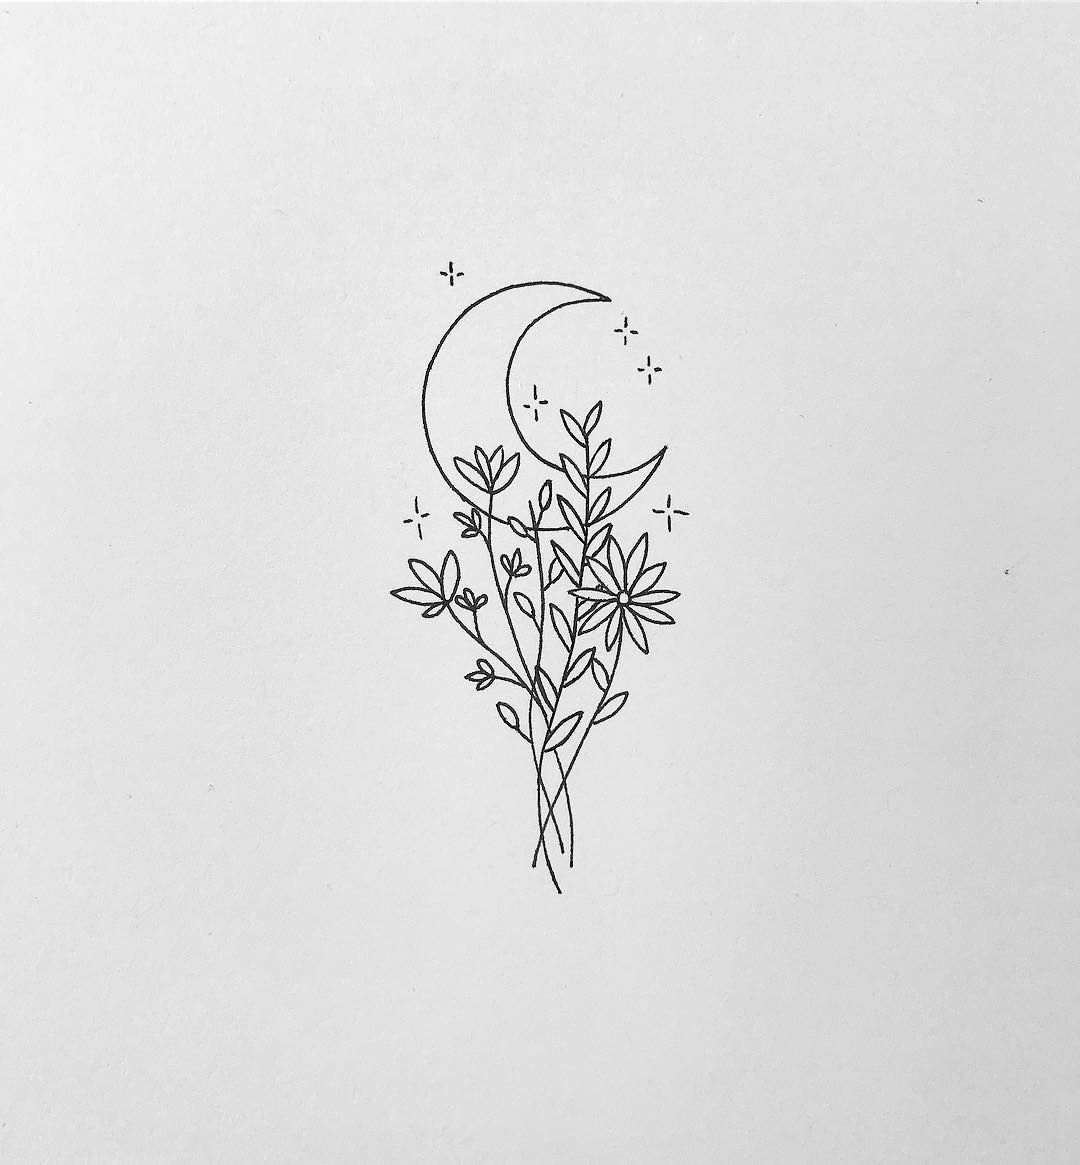 "chaos + cosmos ☾ marise tamara on Instagram: ""Tiny moon and floral tattoo design"